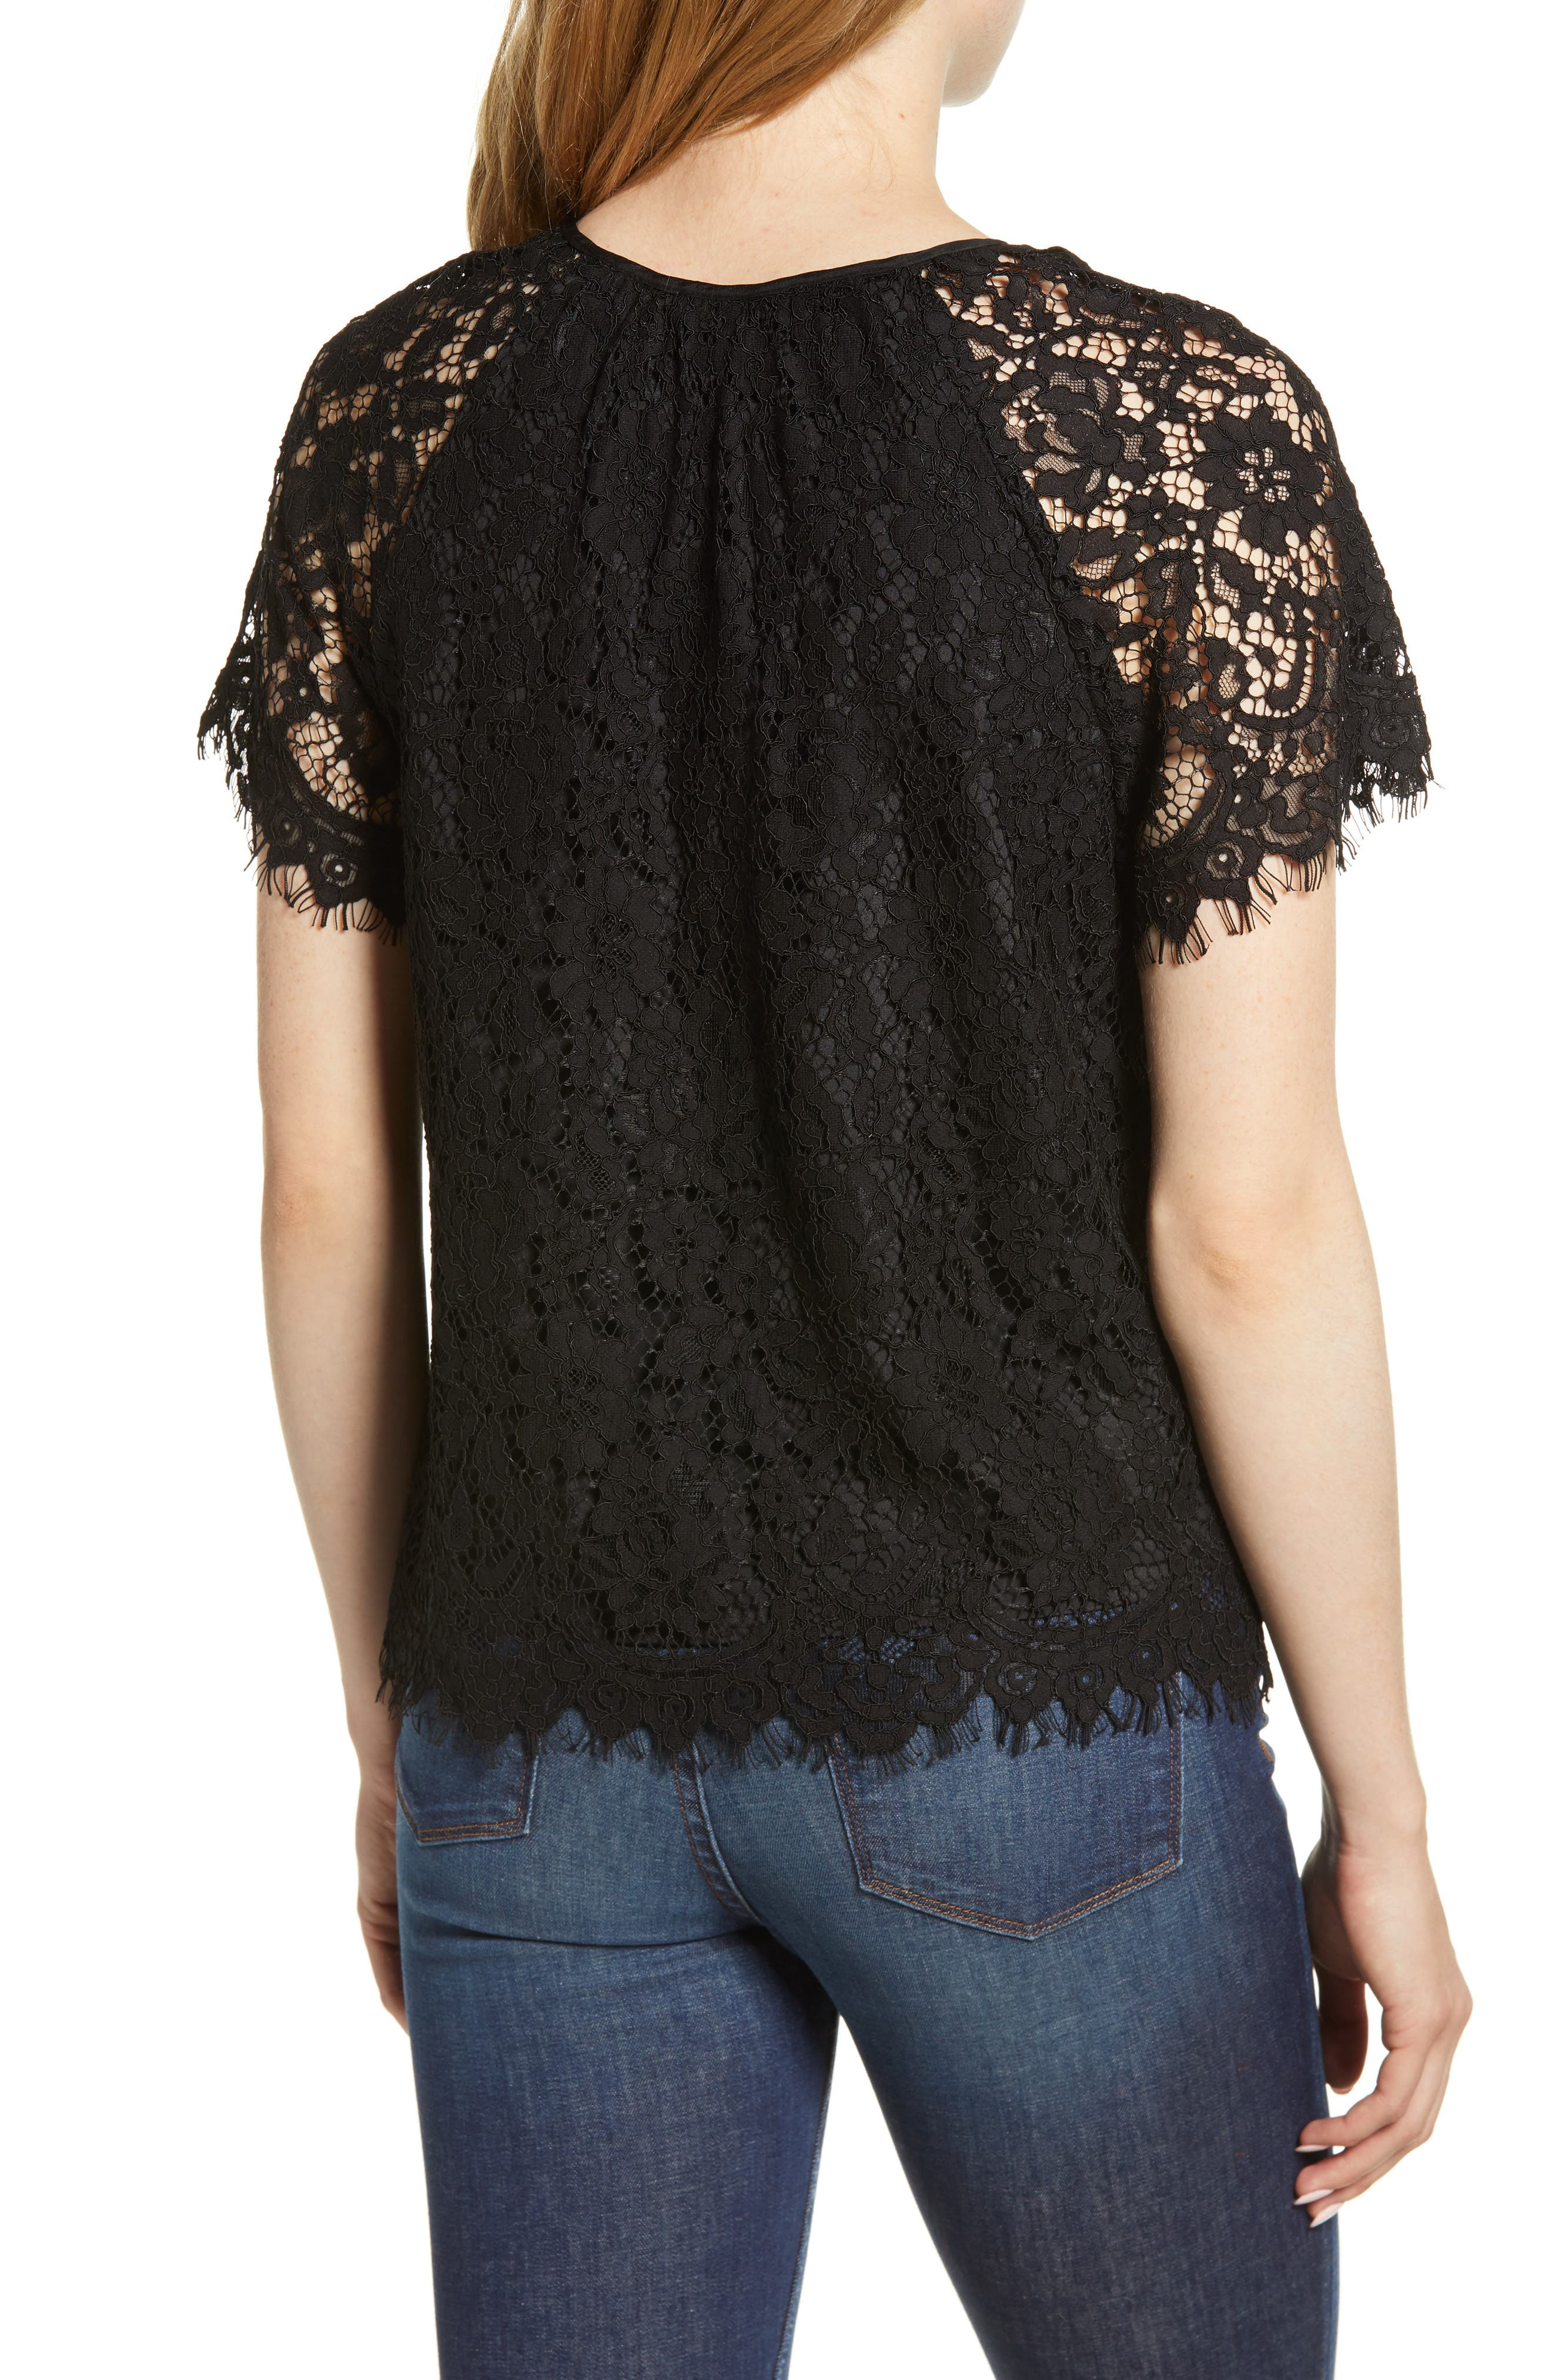 J.CREW,                             Short Sleeve Lace Top,                             Alternate thumbnail 2, color,                             001